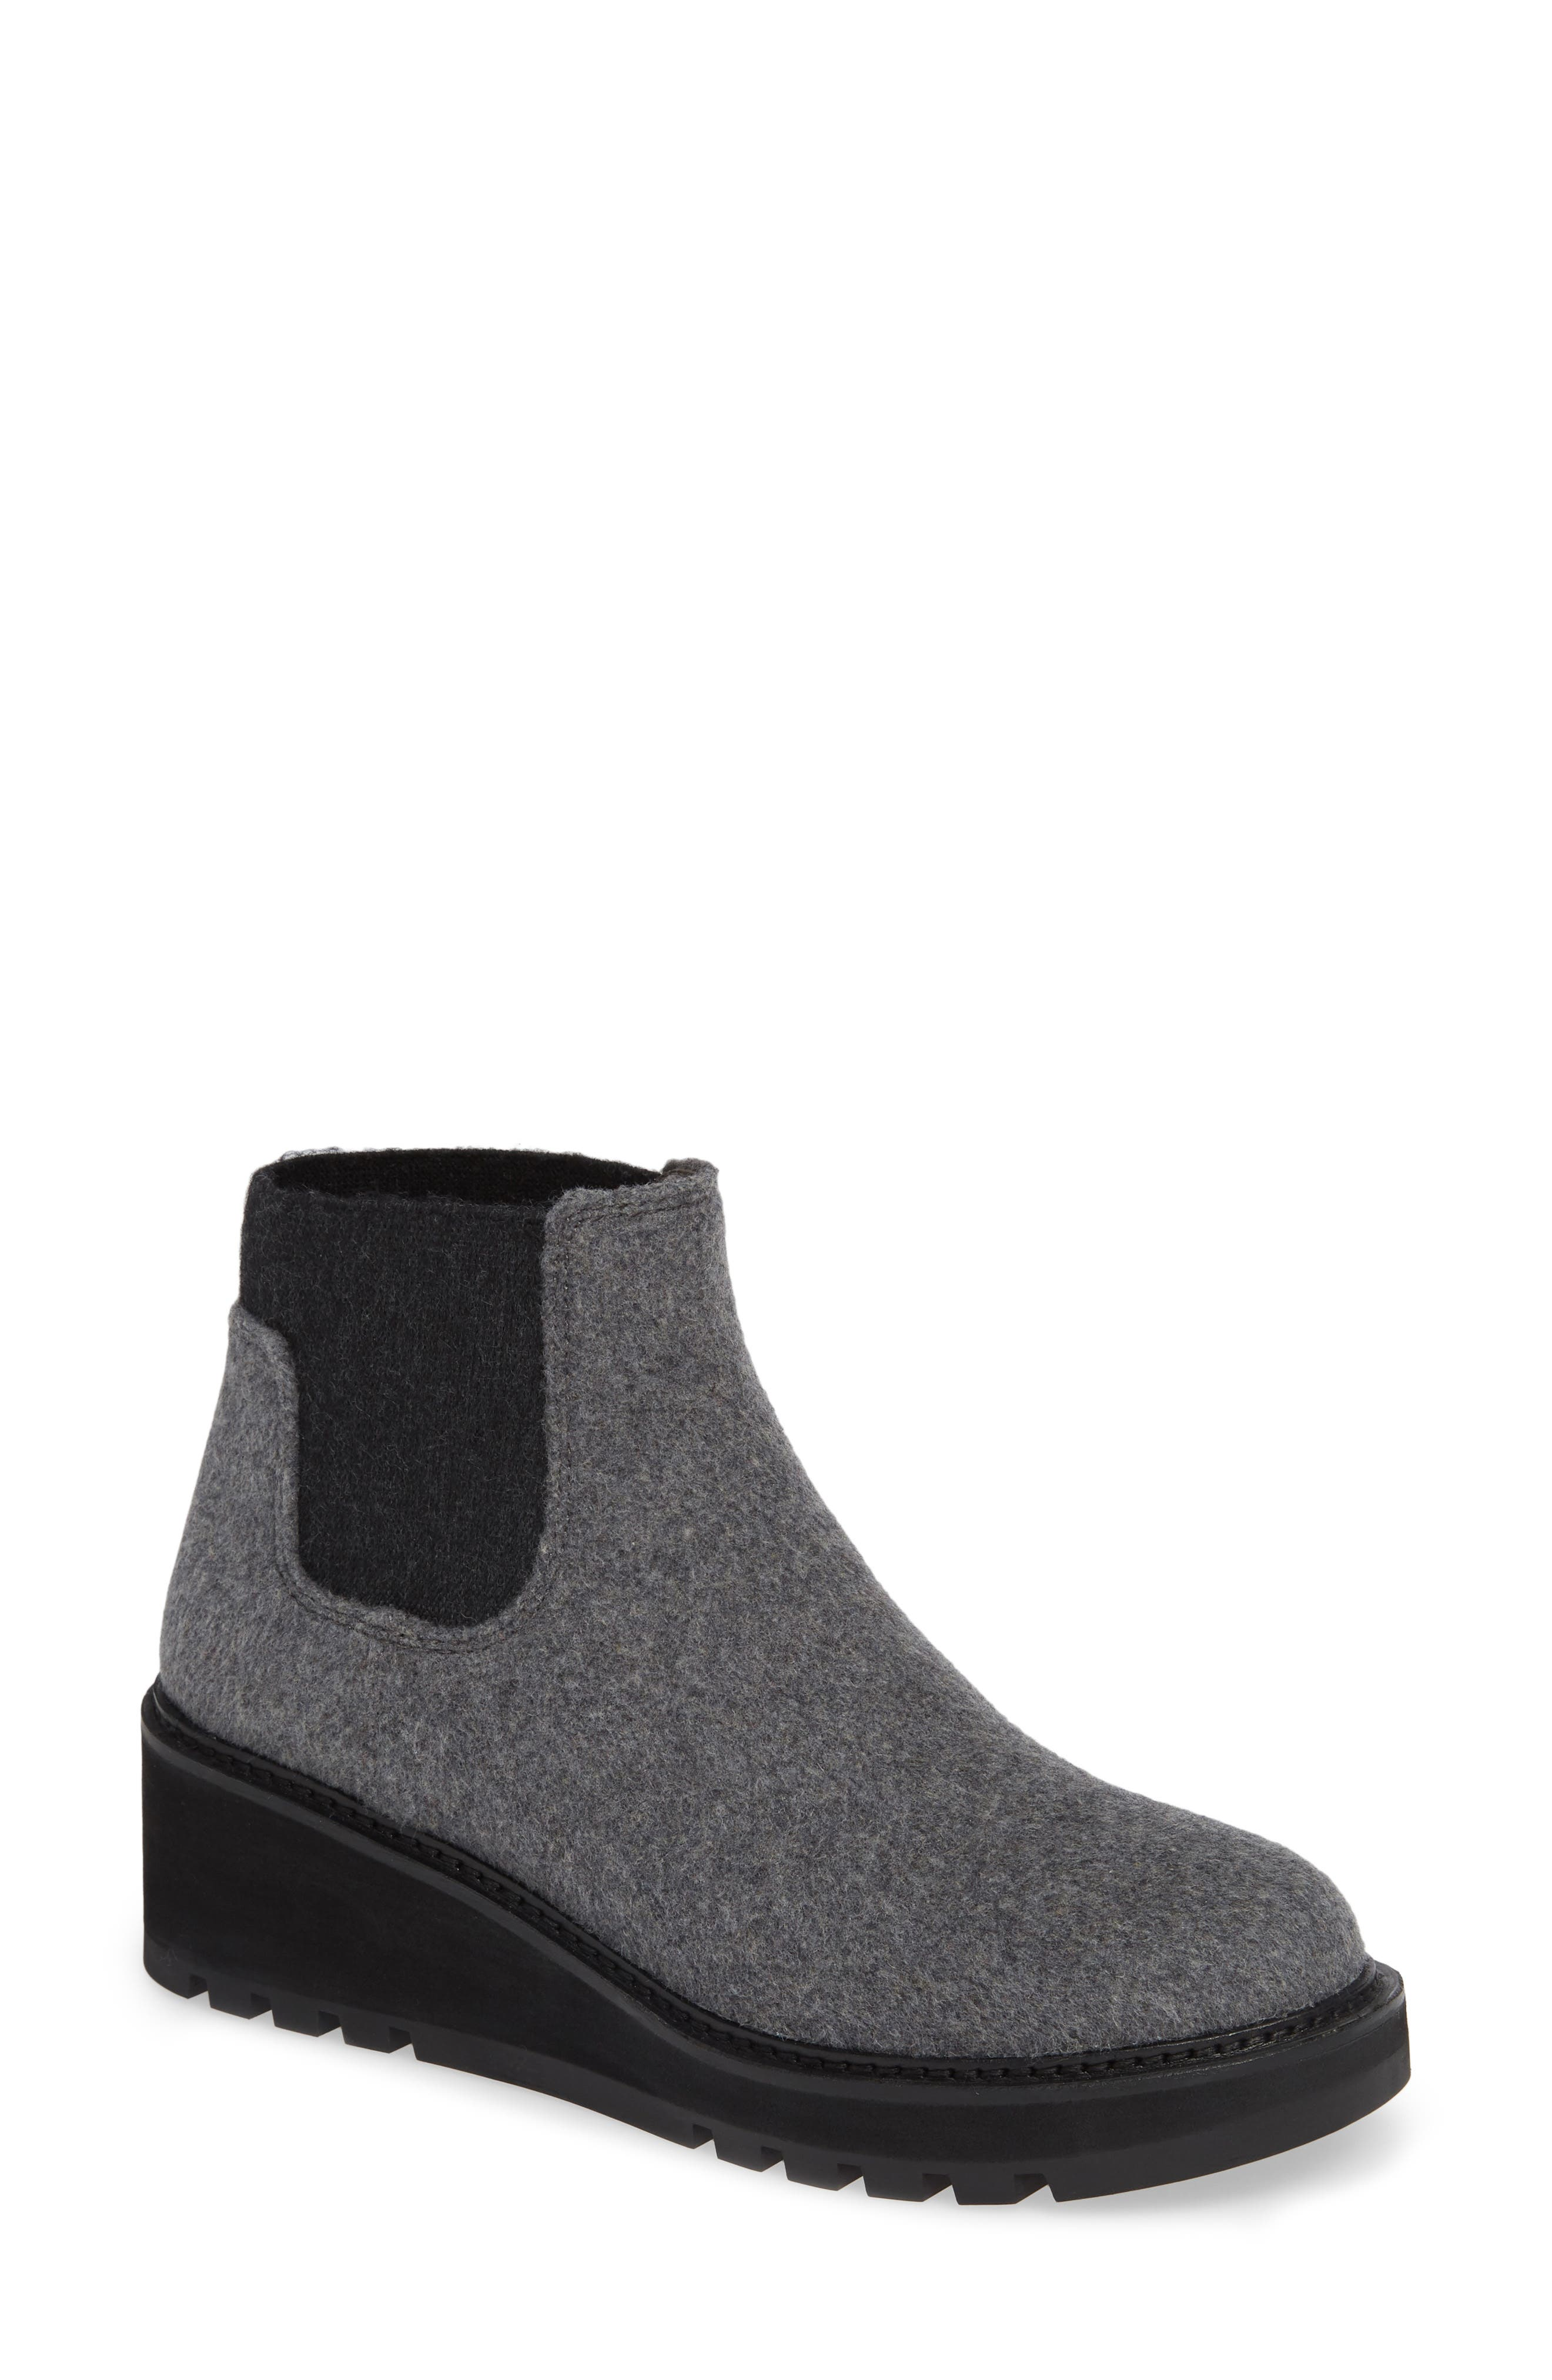 Wedge Chelsea Bootie,                             Main thumbnail 1, color,                             CHARCOAL FABRIC